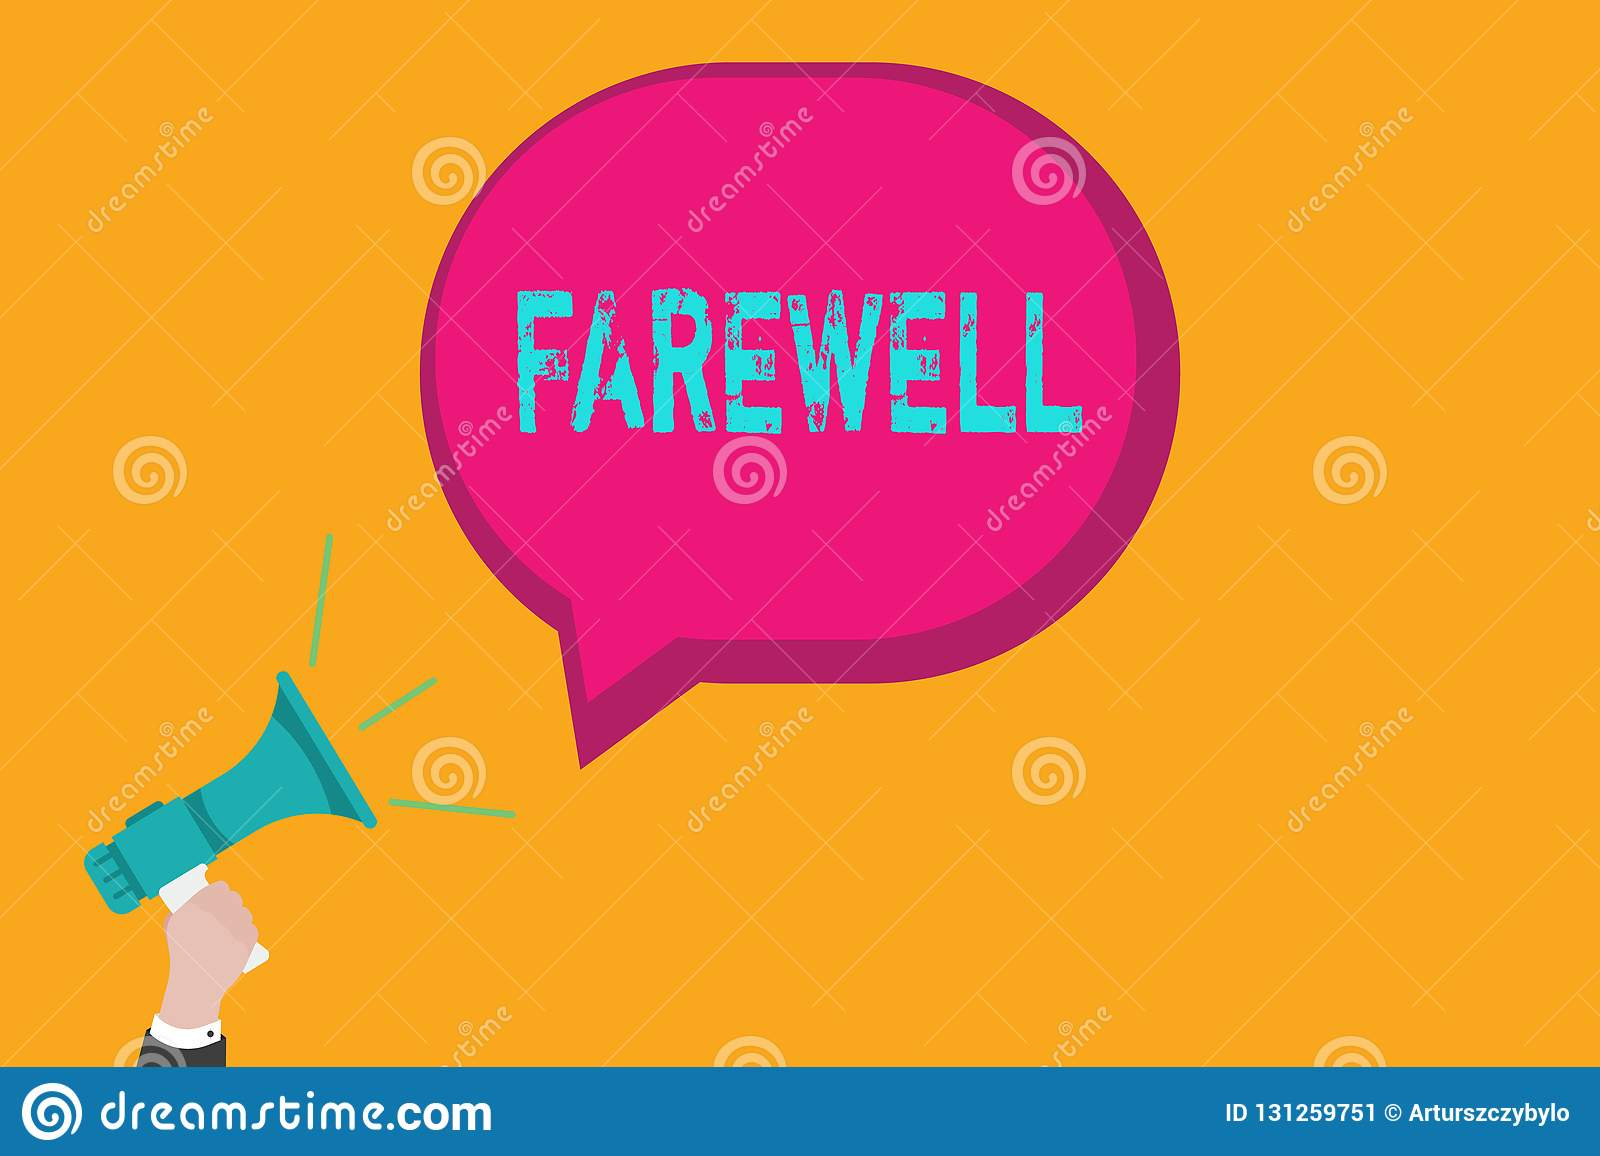 Handwriting Text Writing Farewell Concept Meaning Used To Express Good Wishes On Parting Marking Someones Departure Stock Image Image Of Encouragement Quote 131259751